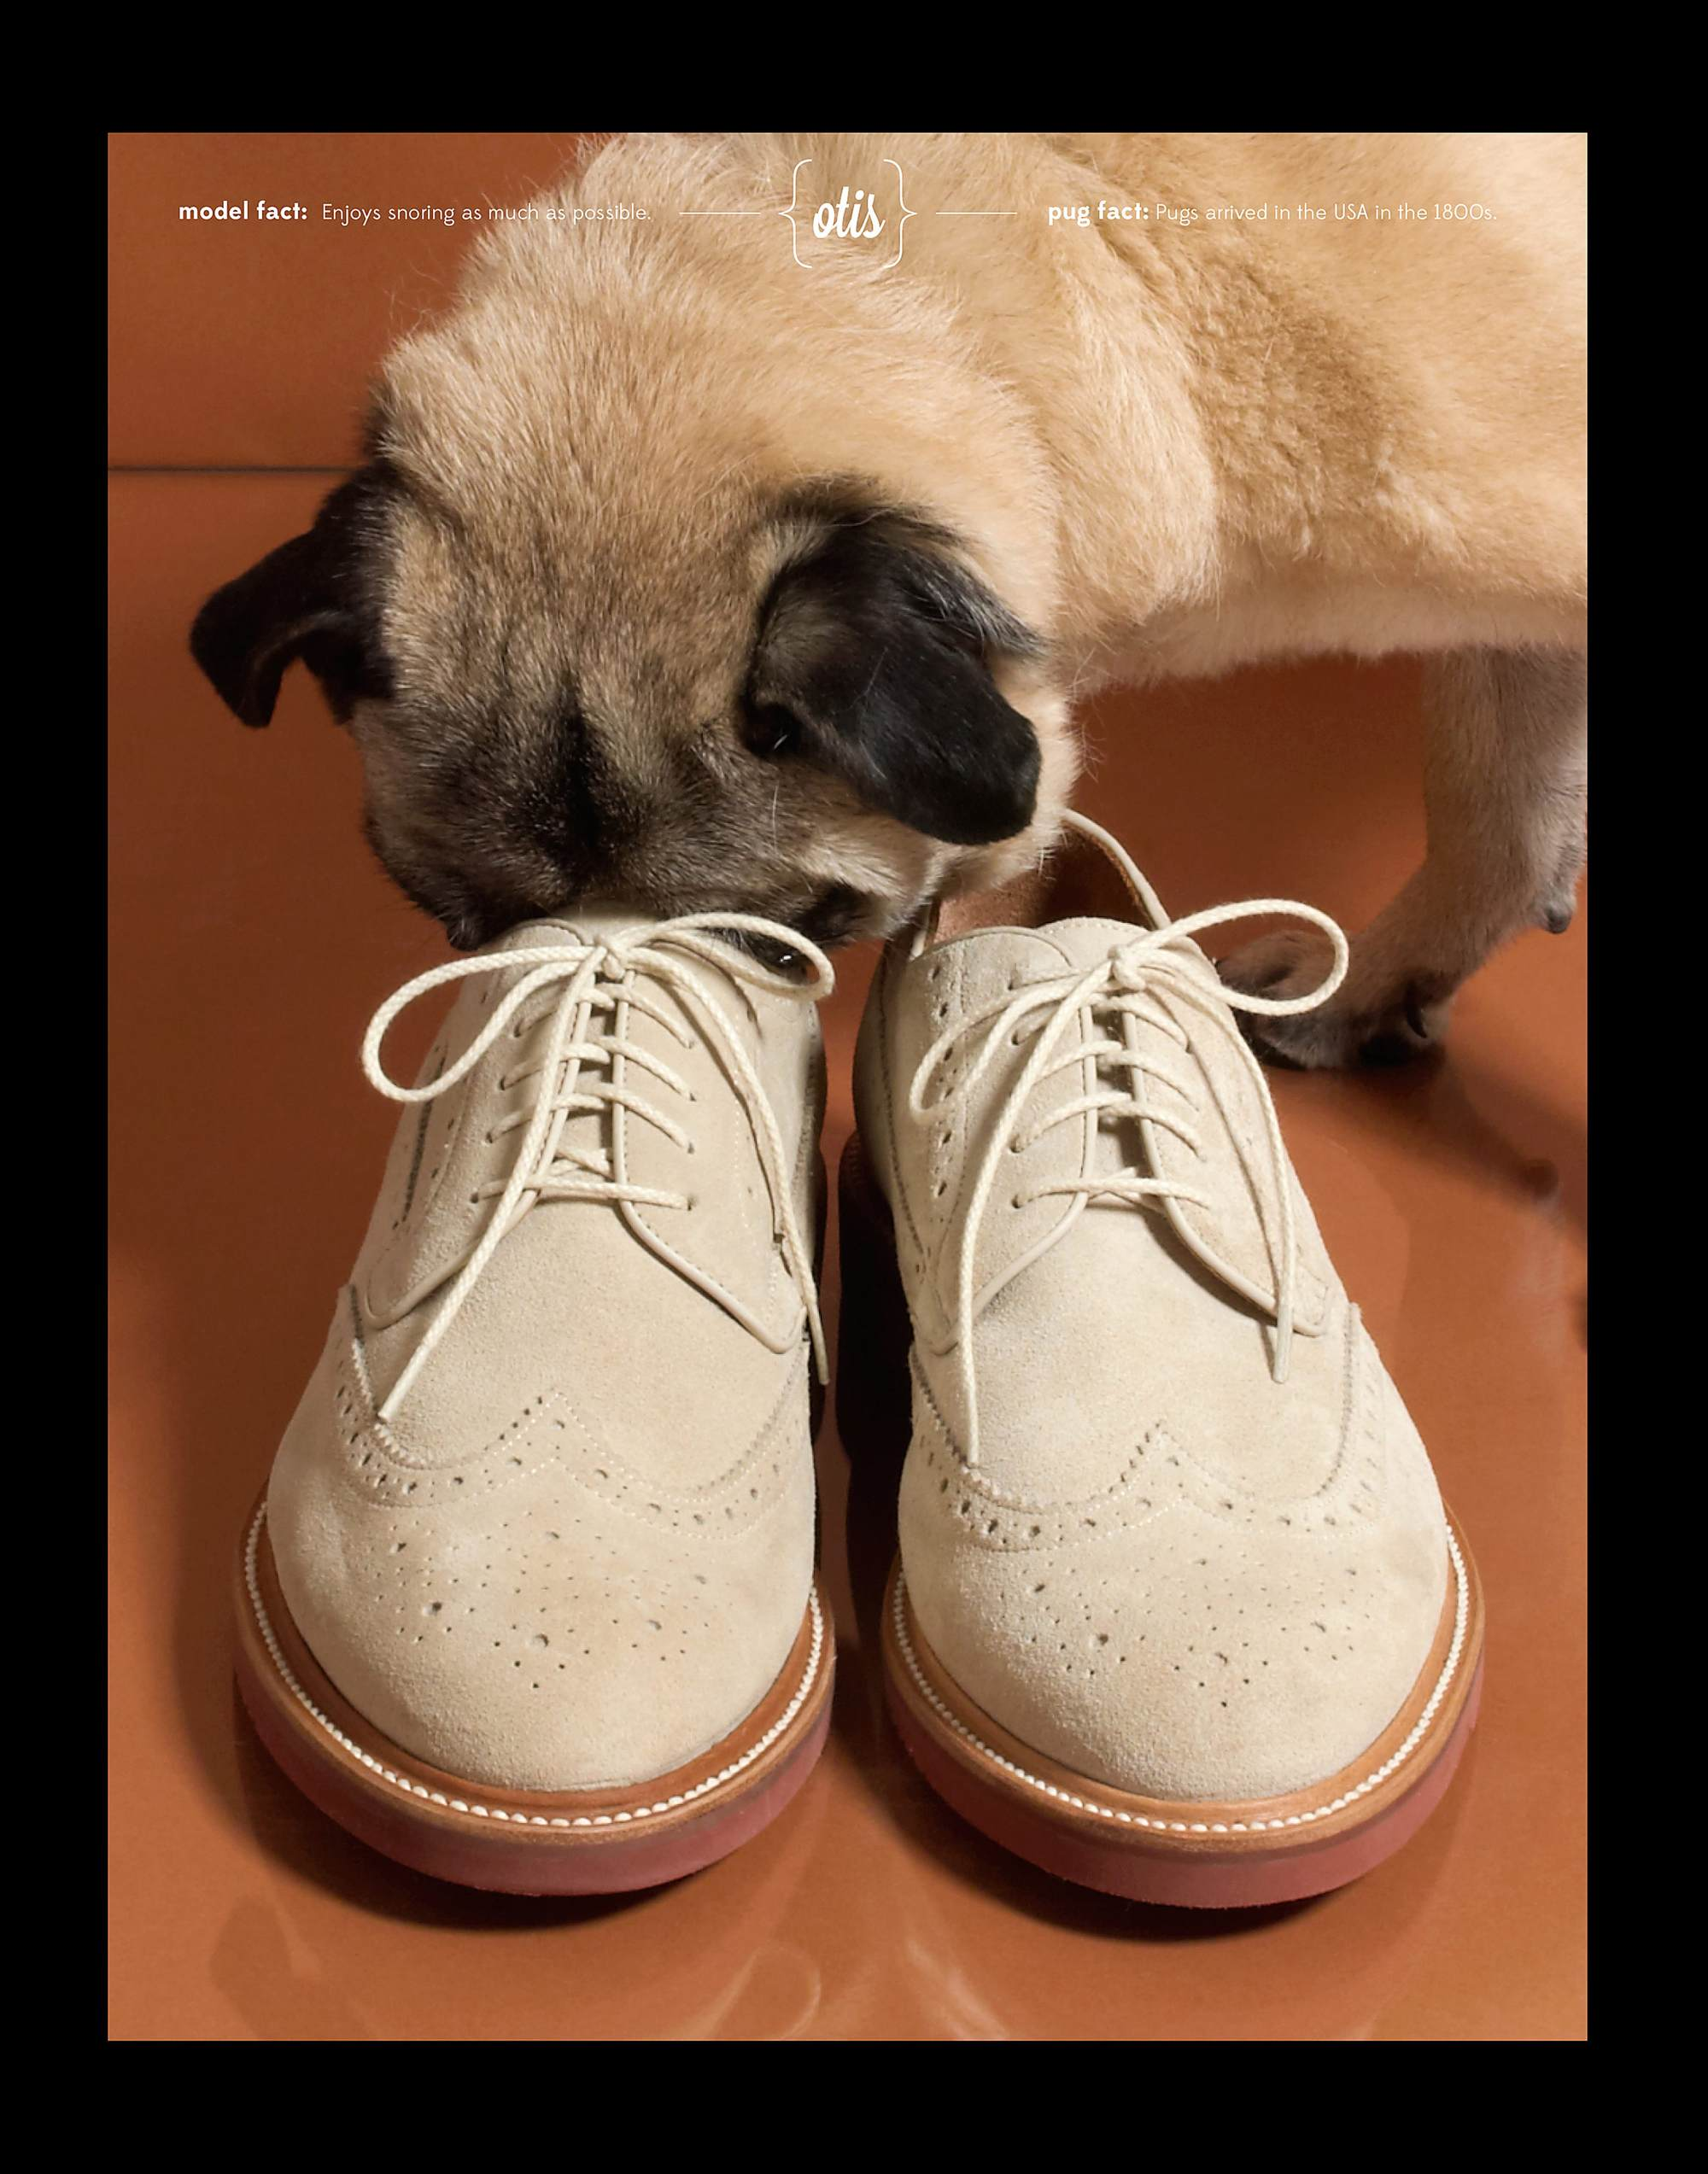 Jcrew_product_photography_shoes_pug.jpg